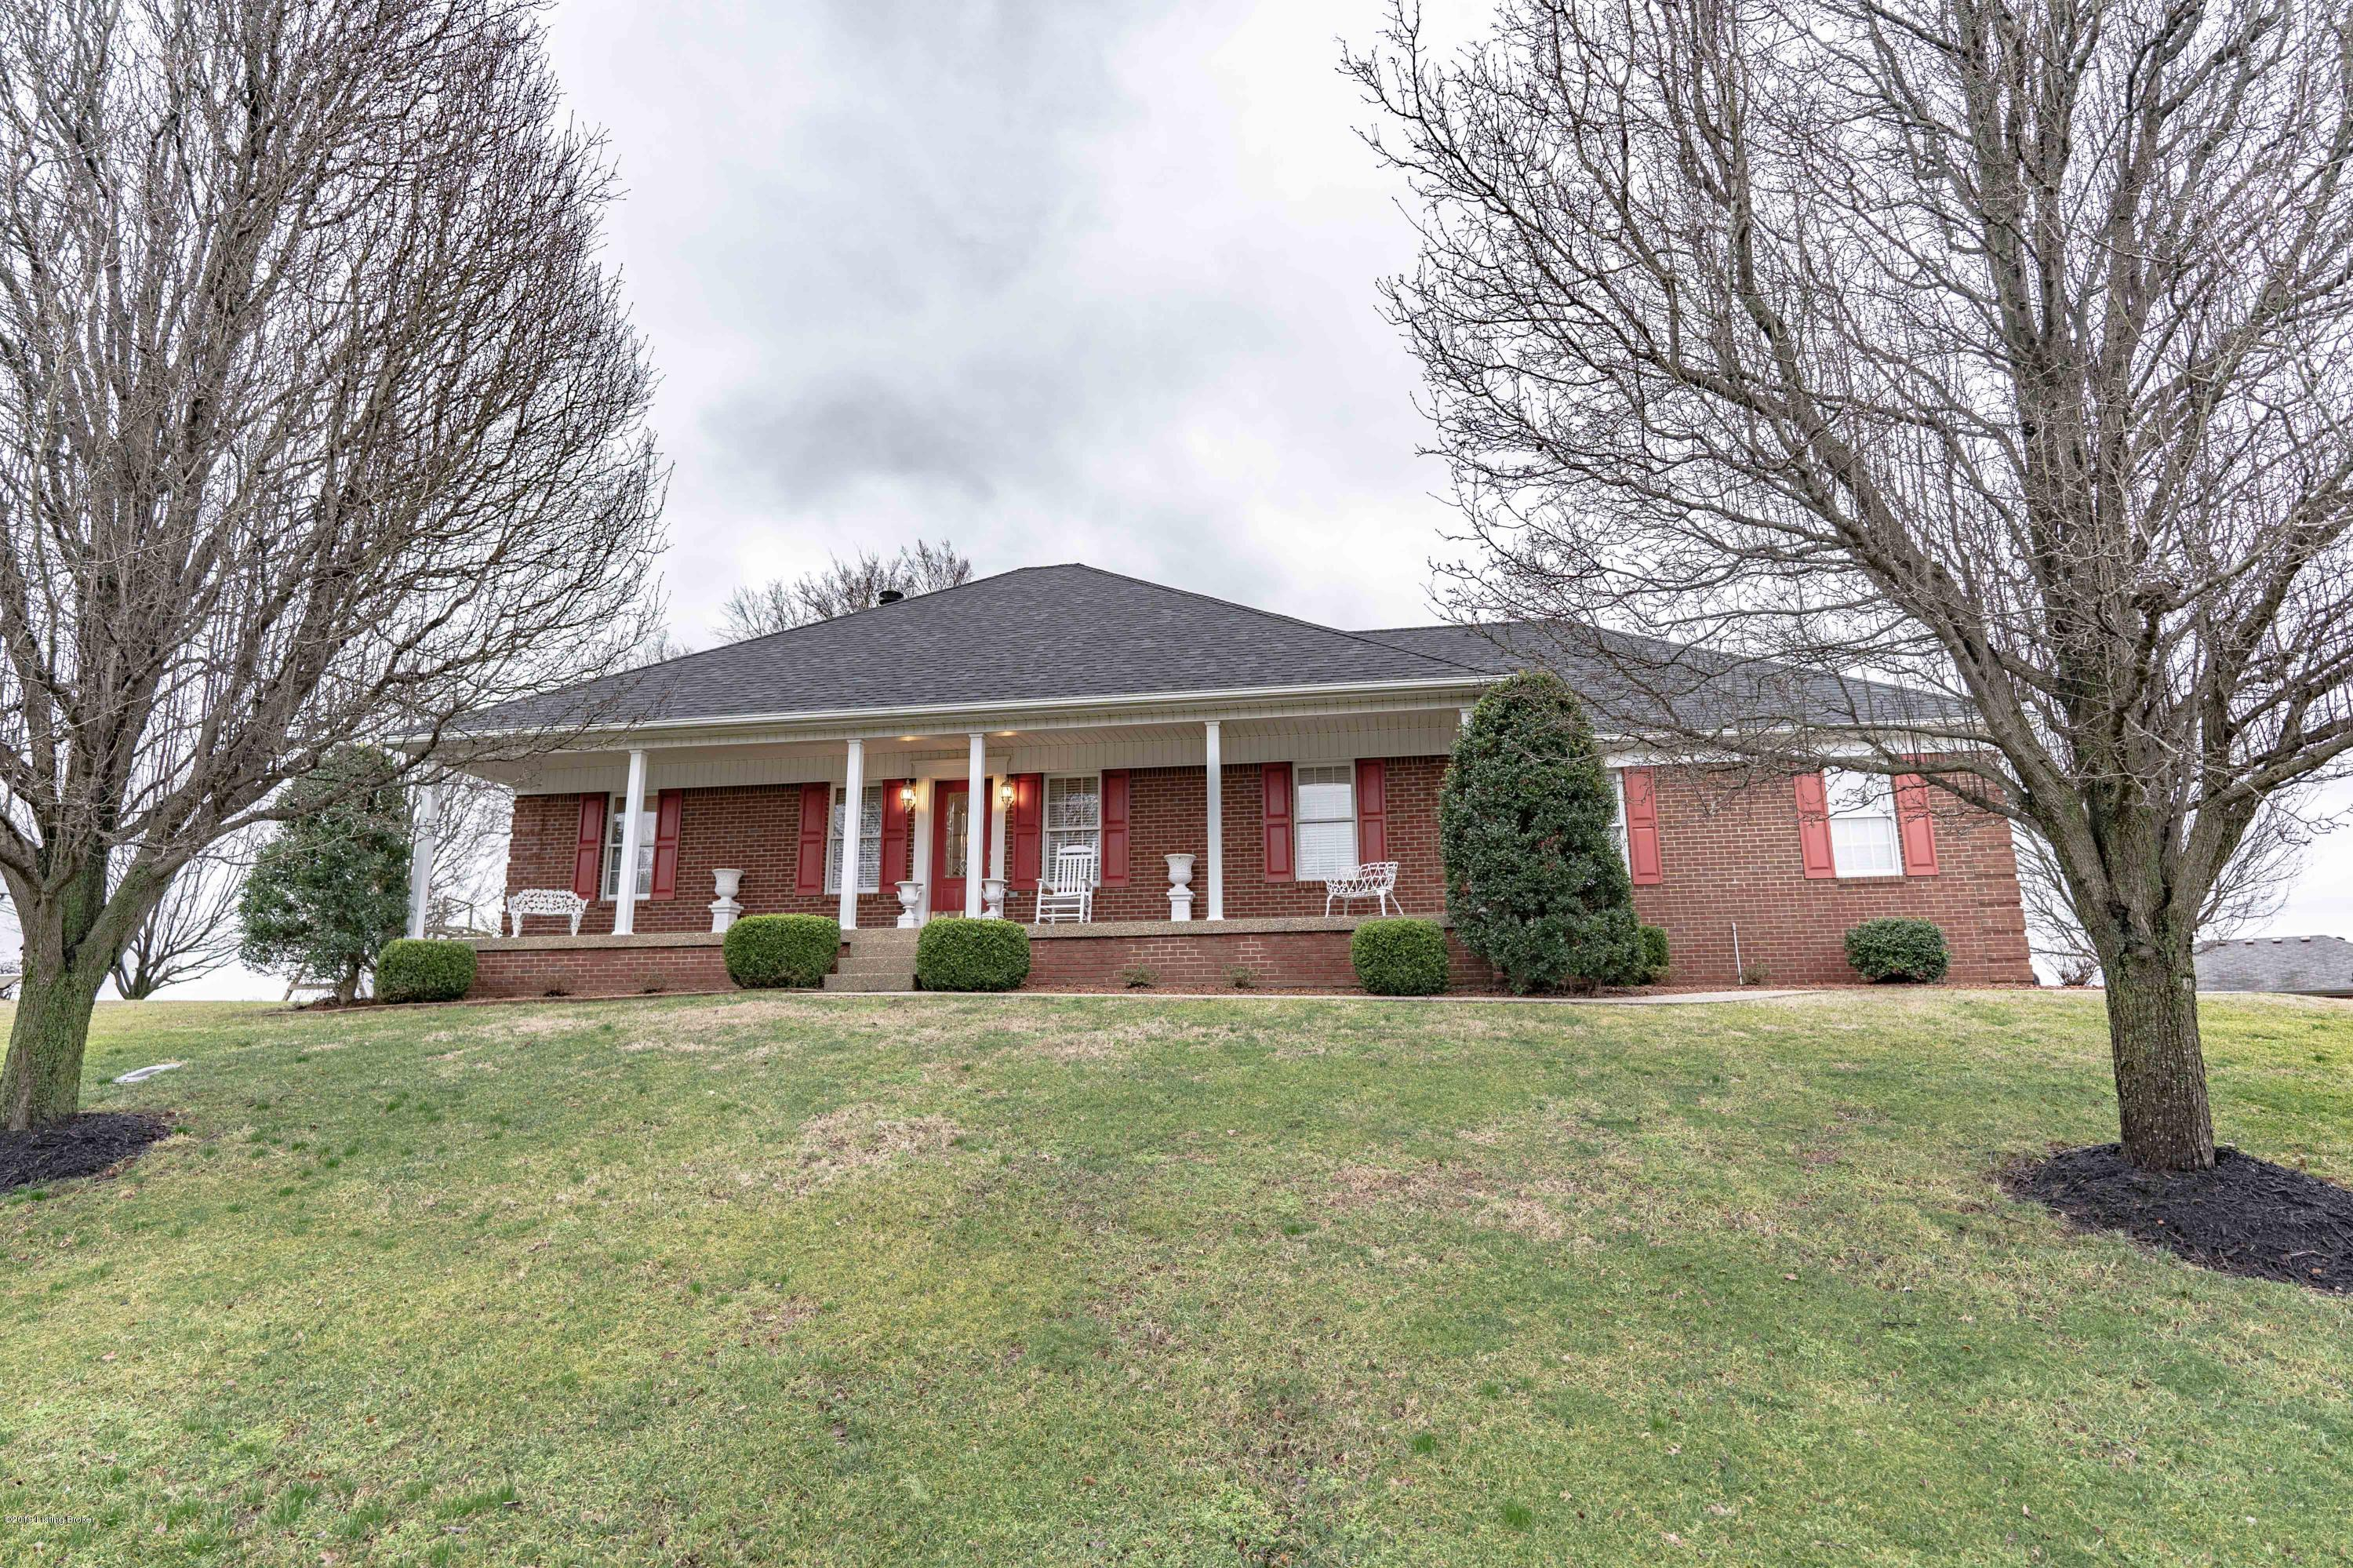 117 Woodhill Rd, Bardstown, Kentucky 40004, 3 Bedrooms Bedrooms, 9 Rooms Rooms,3 BathroomsBathrooms,Residential,For Sale,Woodhill,1524575